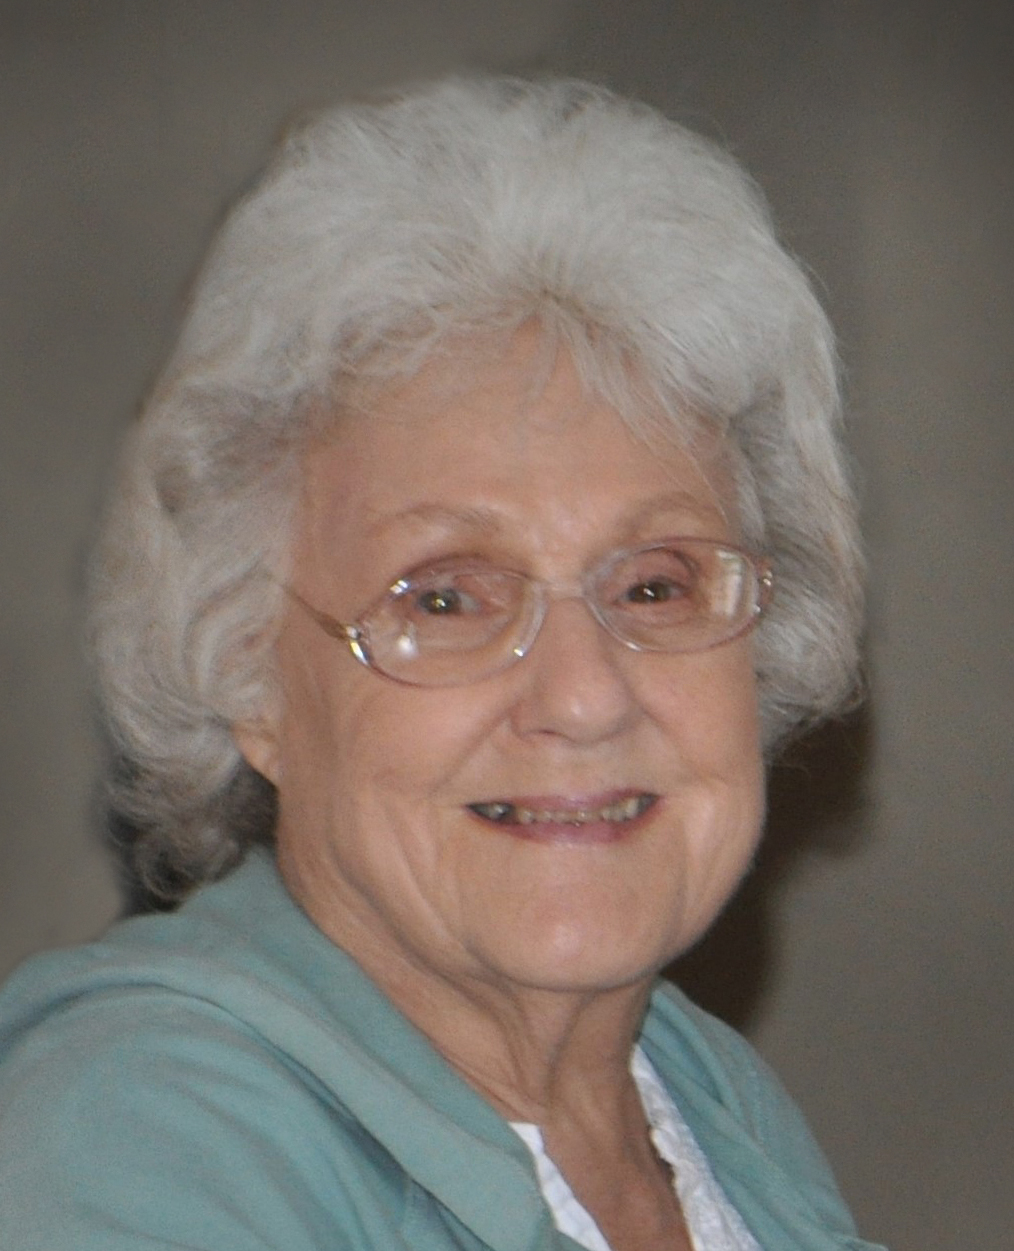 Shirley Marie (Preston) Nelsen, 89 years of age, of Republican City, Nebraska